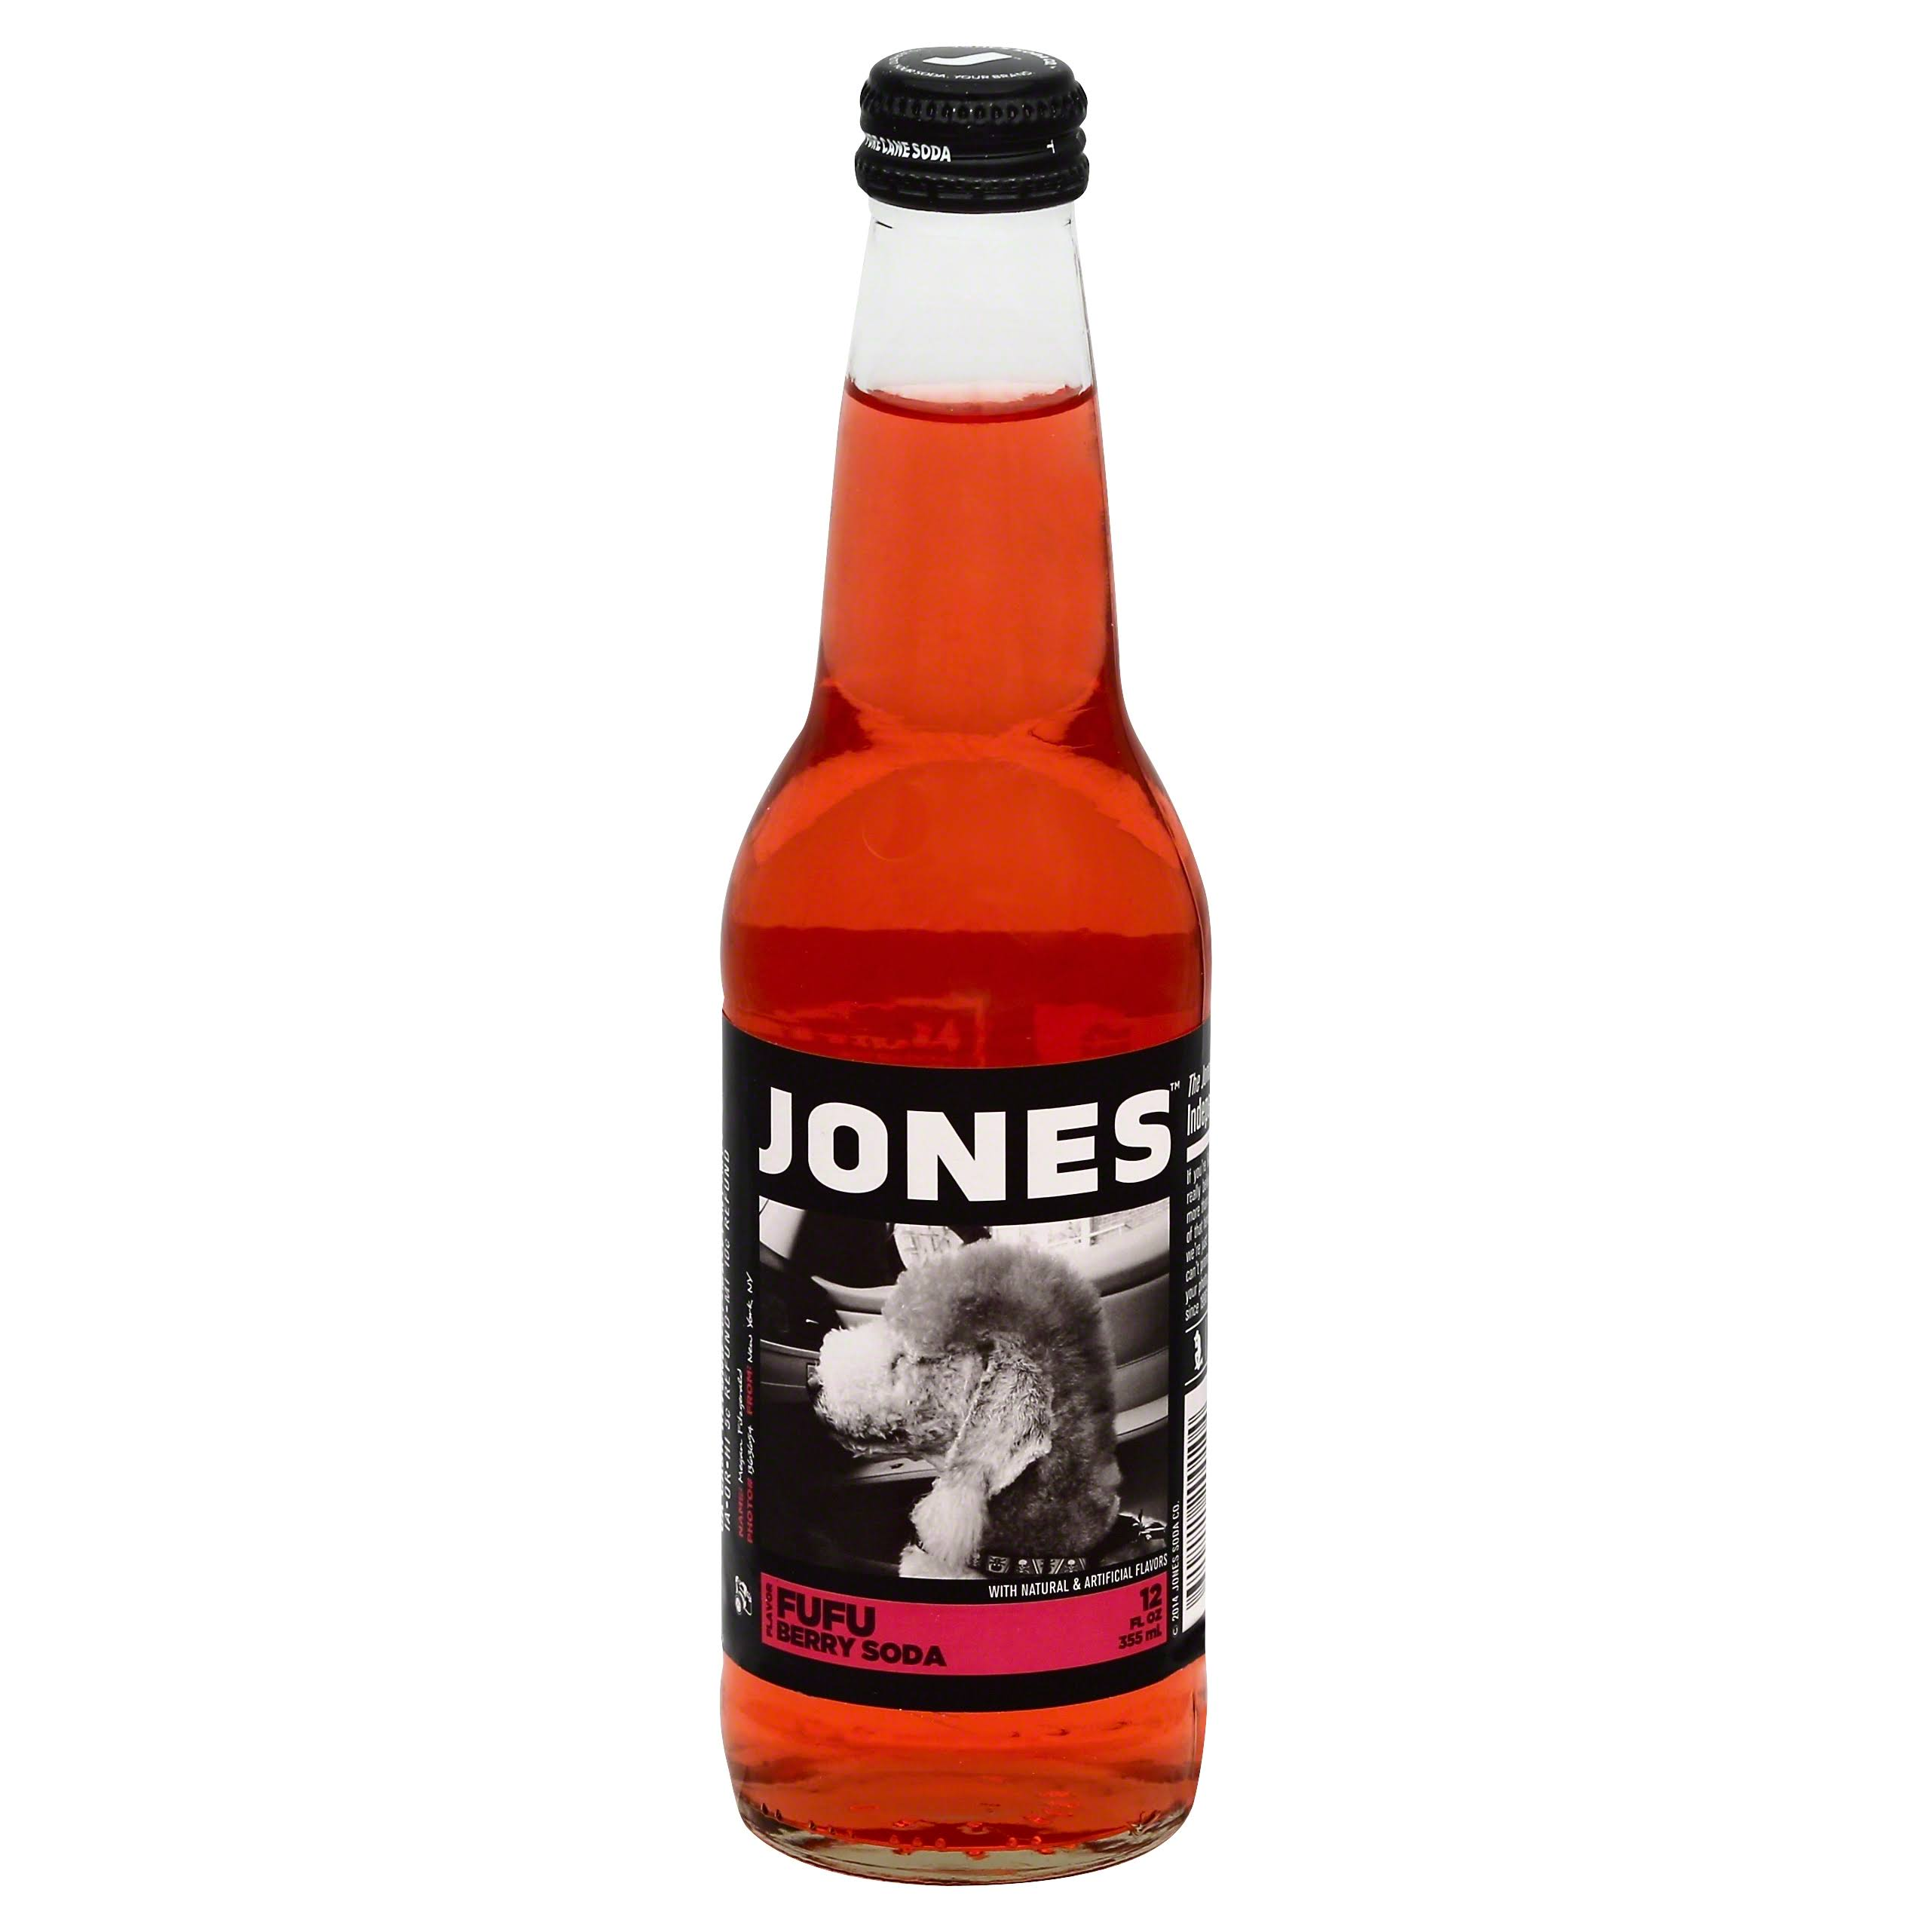 Jones Soda, Fufu Berry Flavor - 12 fl oz